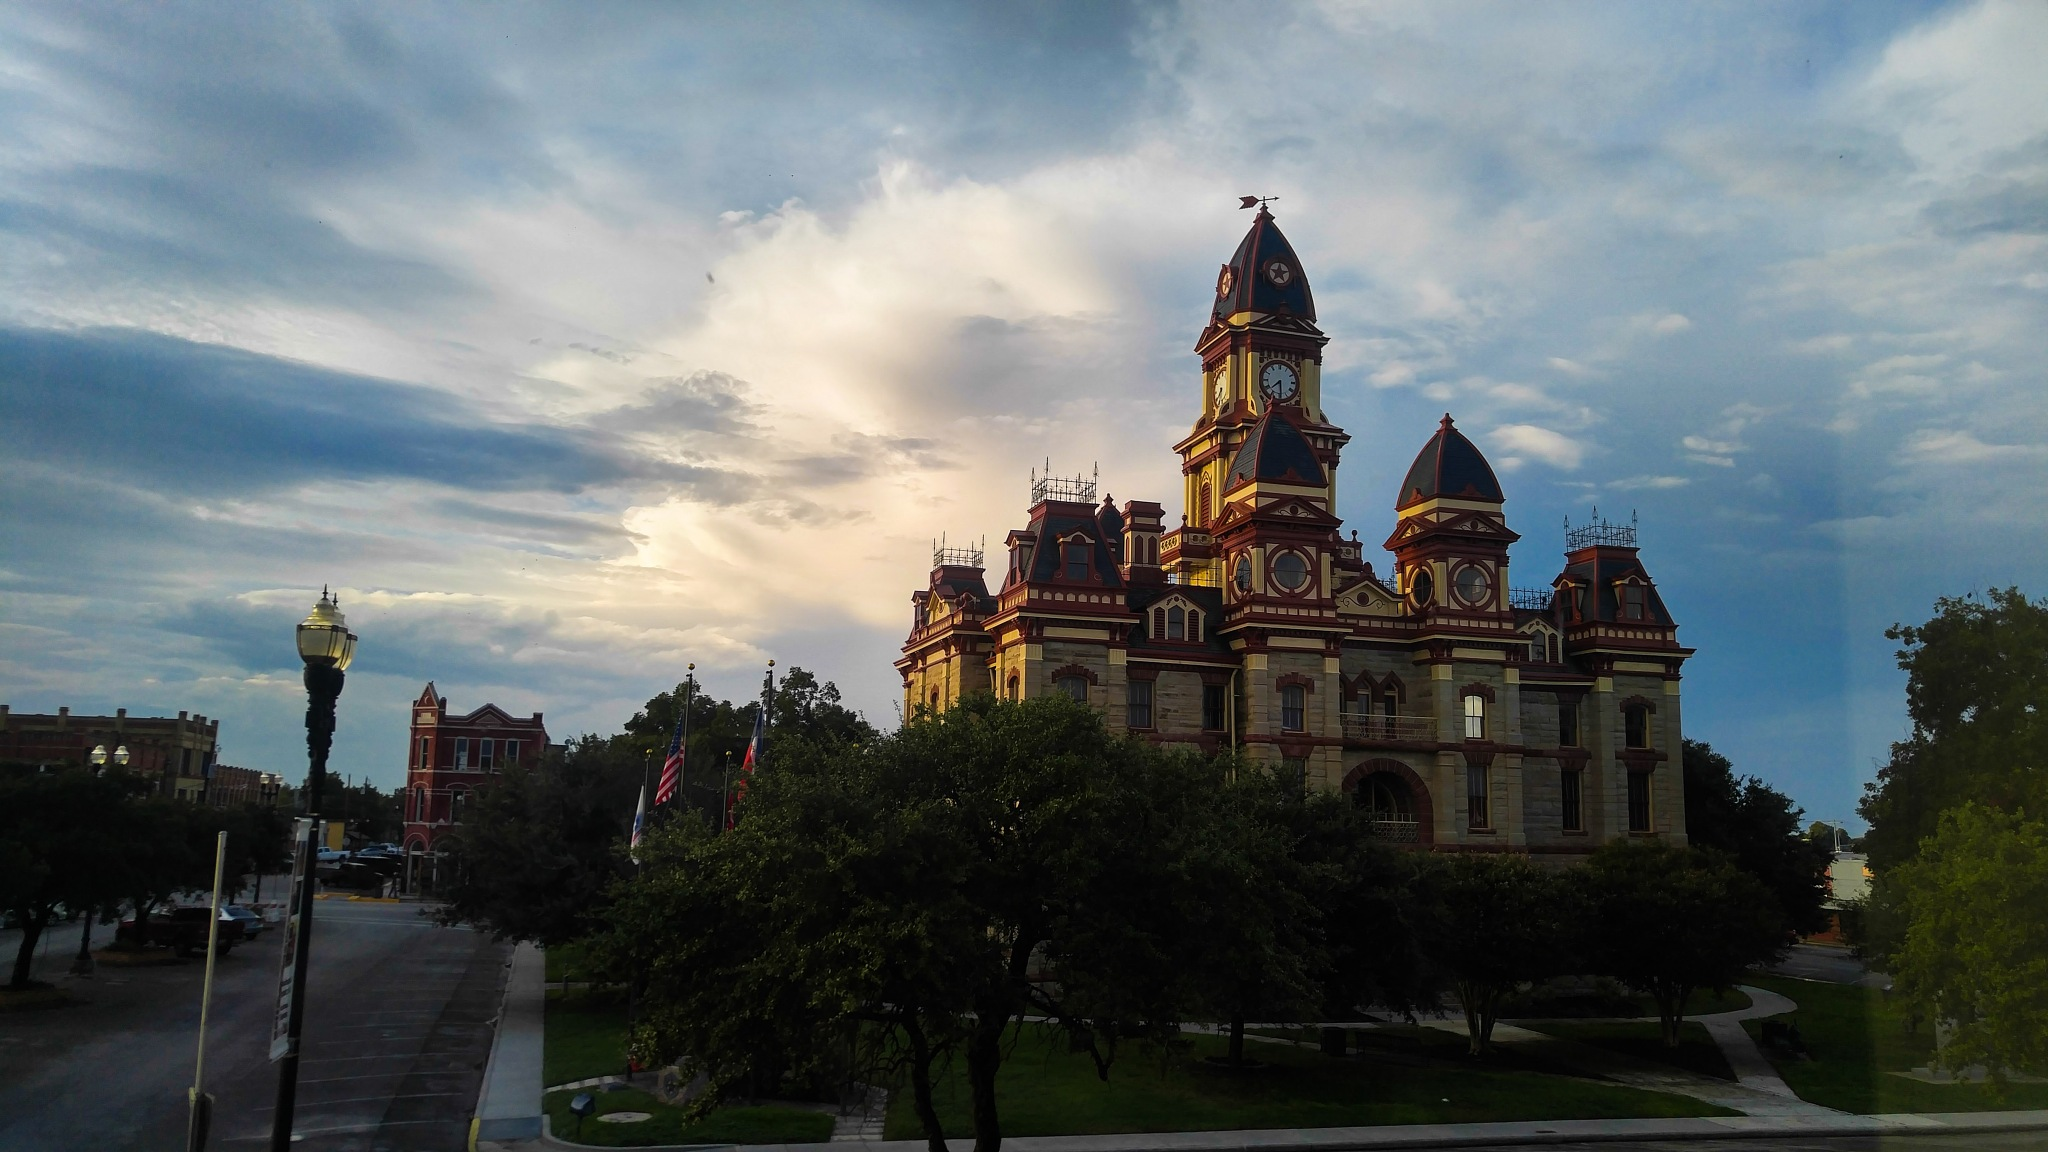 County Courthouse Lockhart Texas by Leamsi Lopez